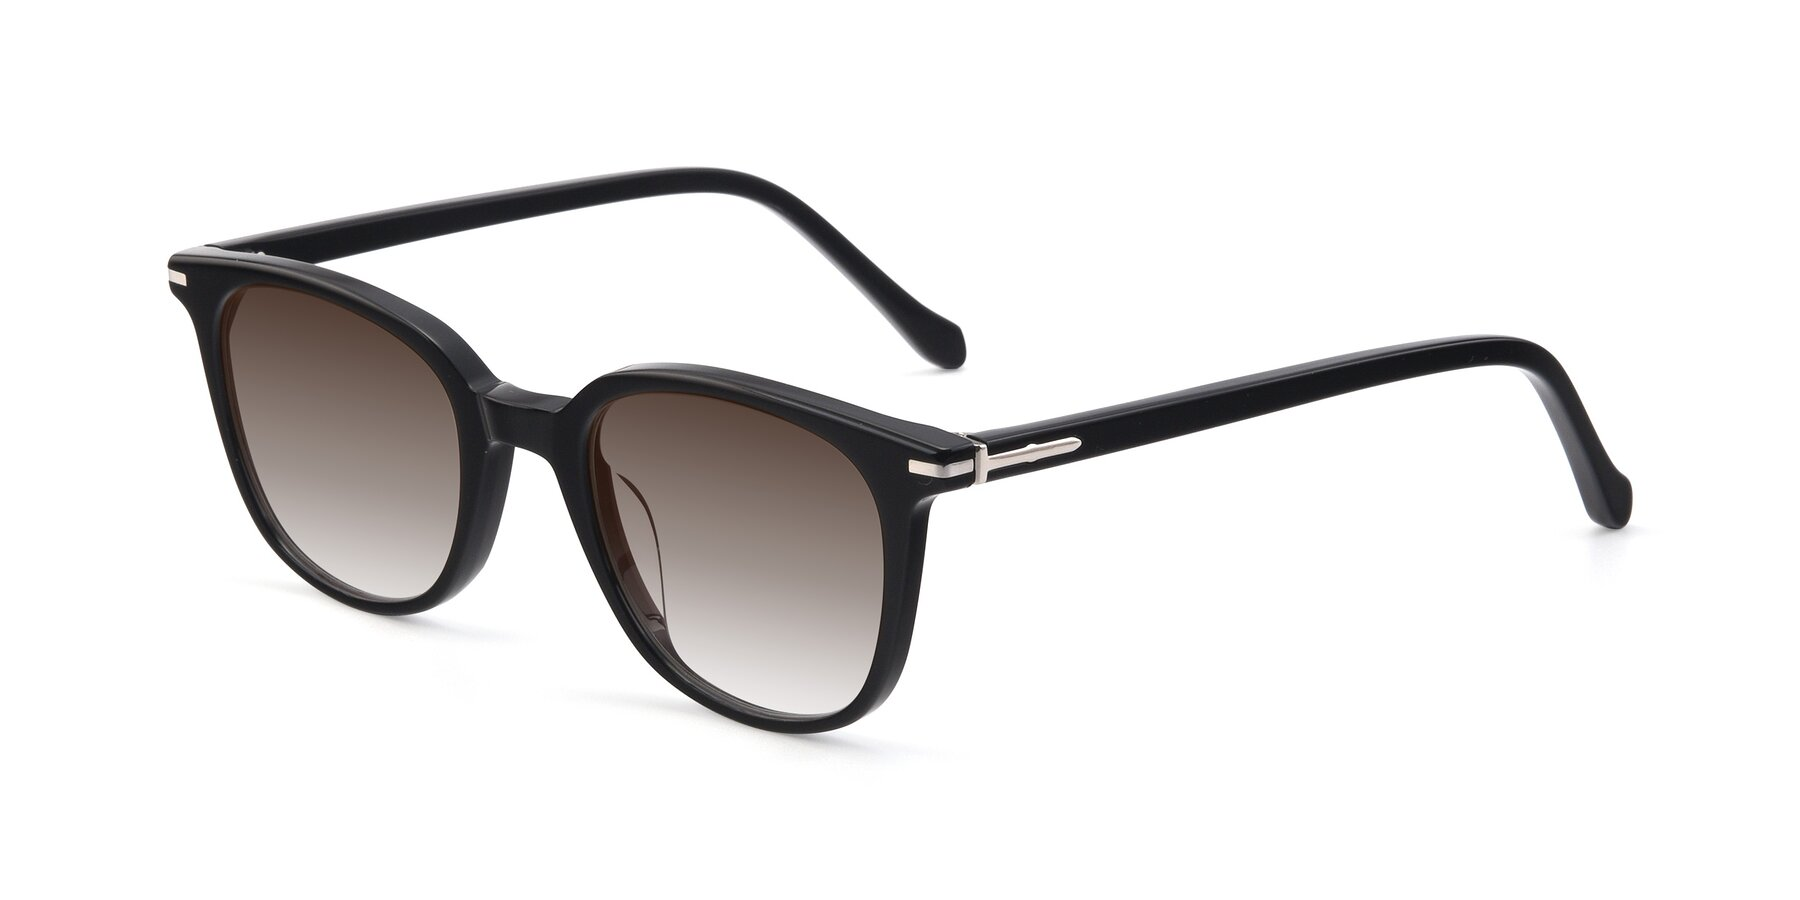 Angle of 17562 in Black with Brown Gradient Lenses